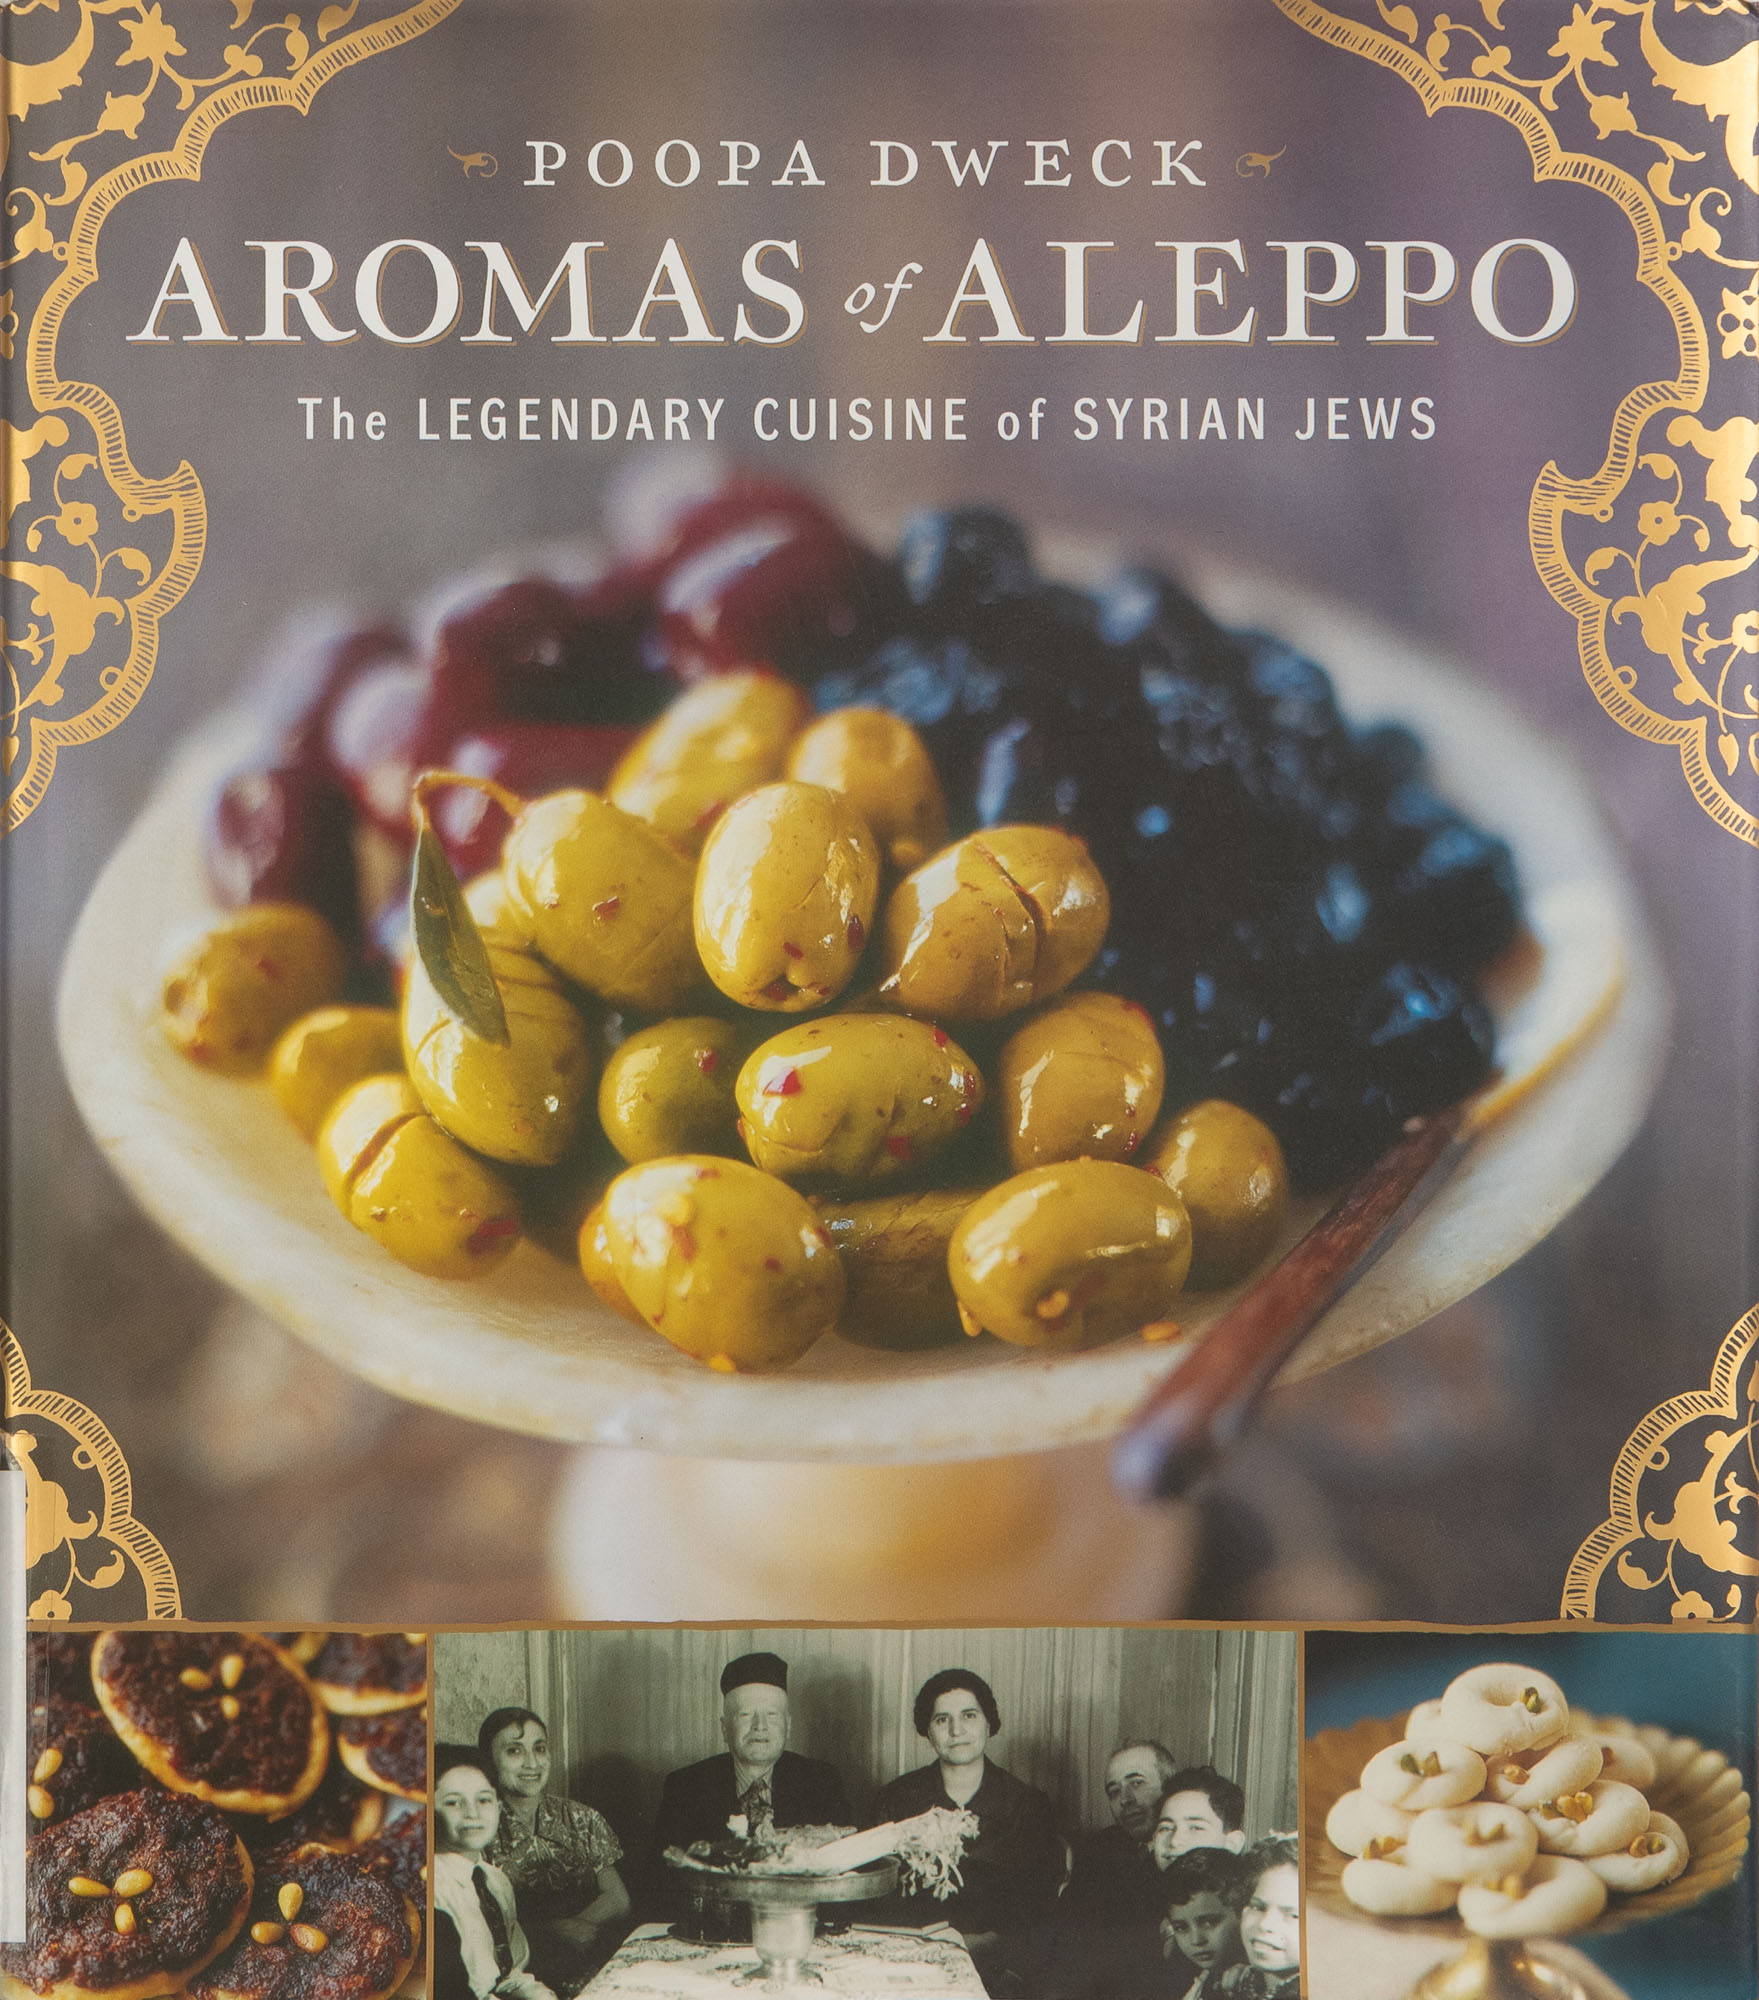 The cover of the cookbook Aromas of Aleppo: The Legendary Cuisine of Syrian Jews